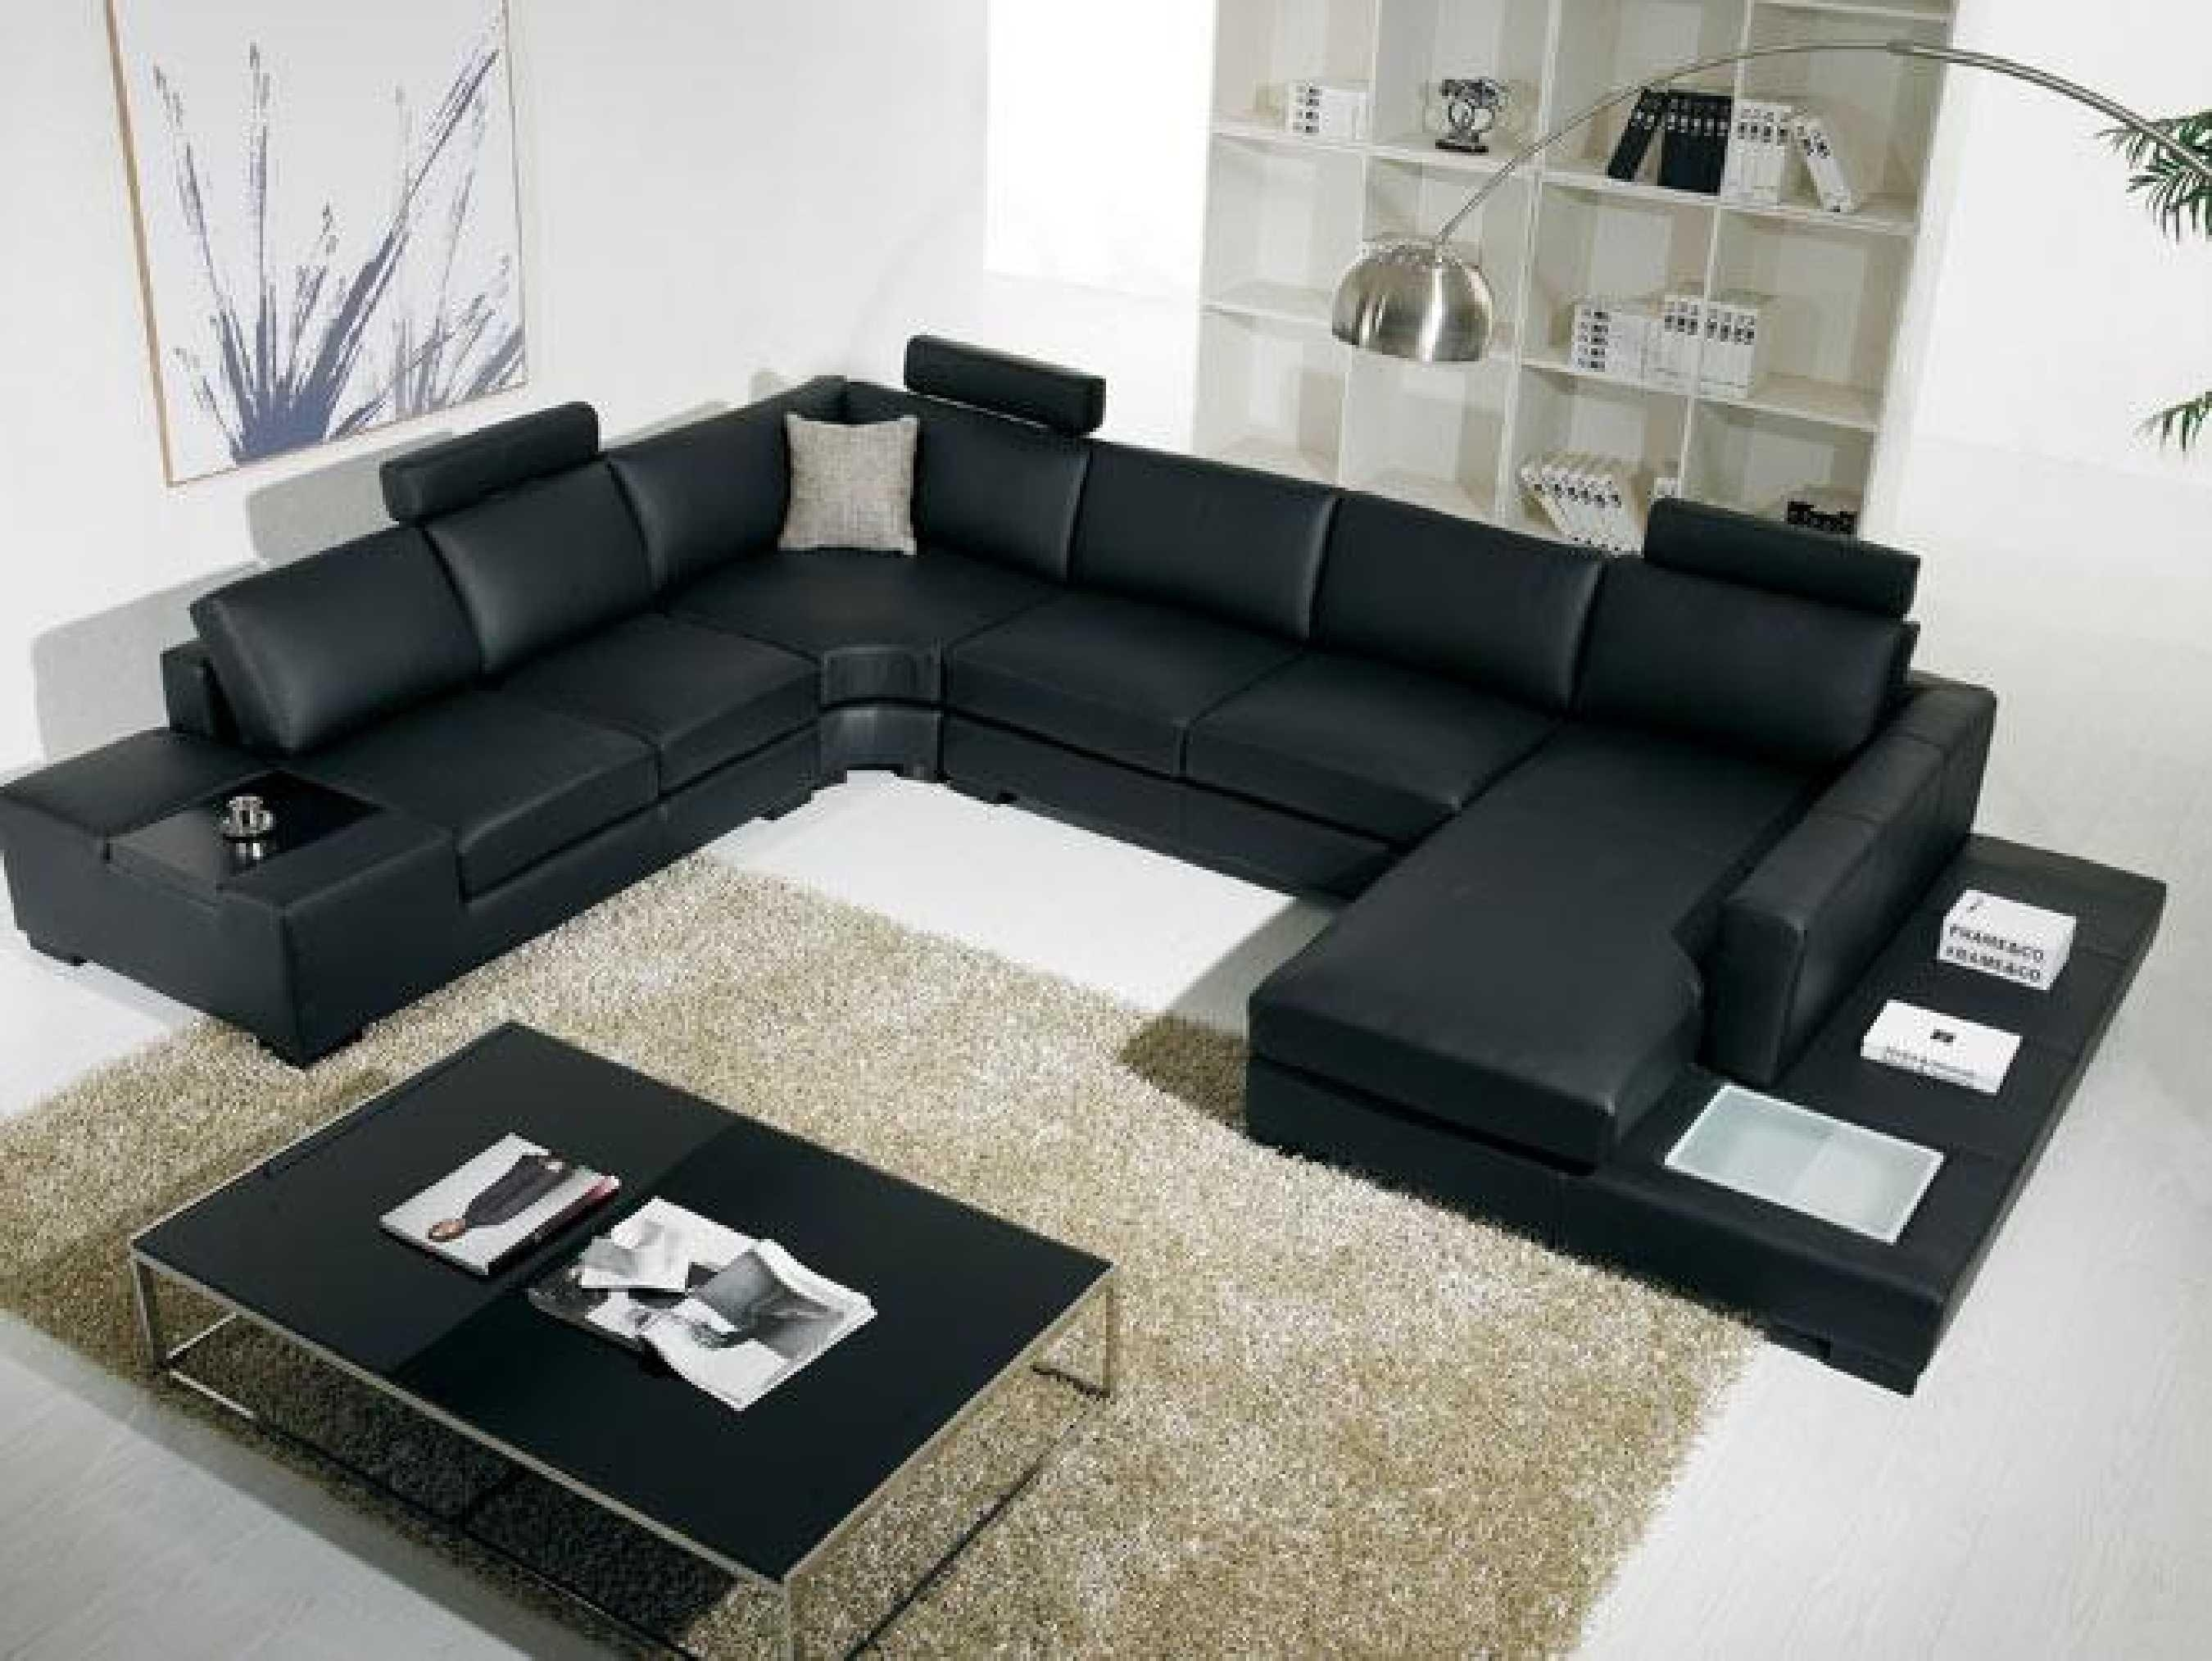 Living Room : Awesome Black Leather Sectional Living Room Ideas Pertaining To Black Leather Sectional Sleeper Sofas (View 12 of 21)